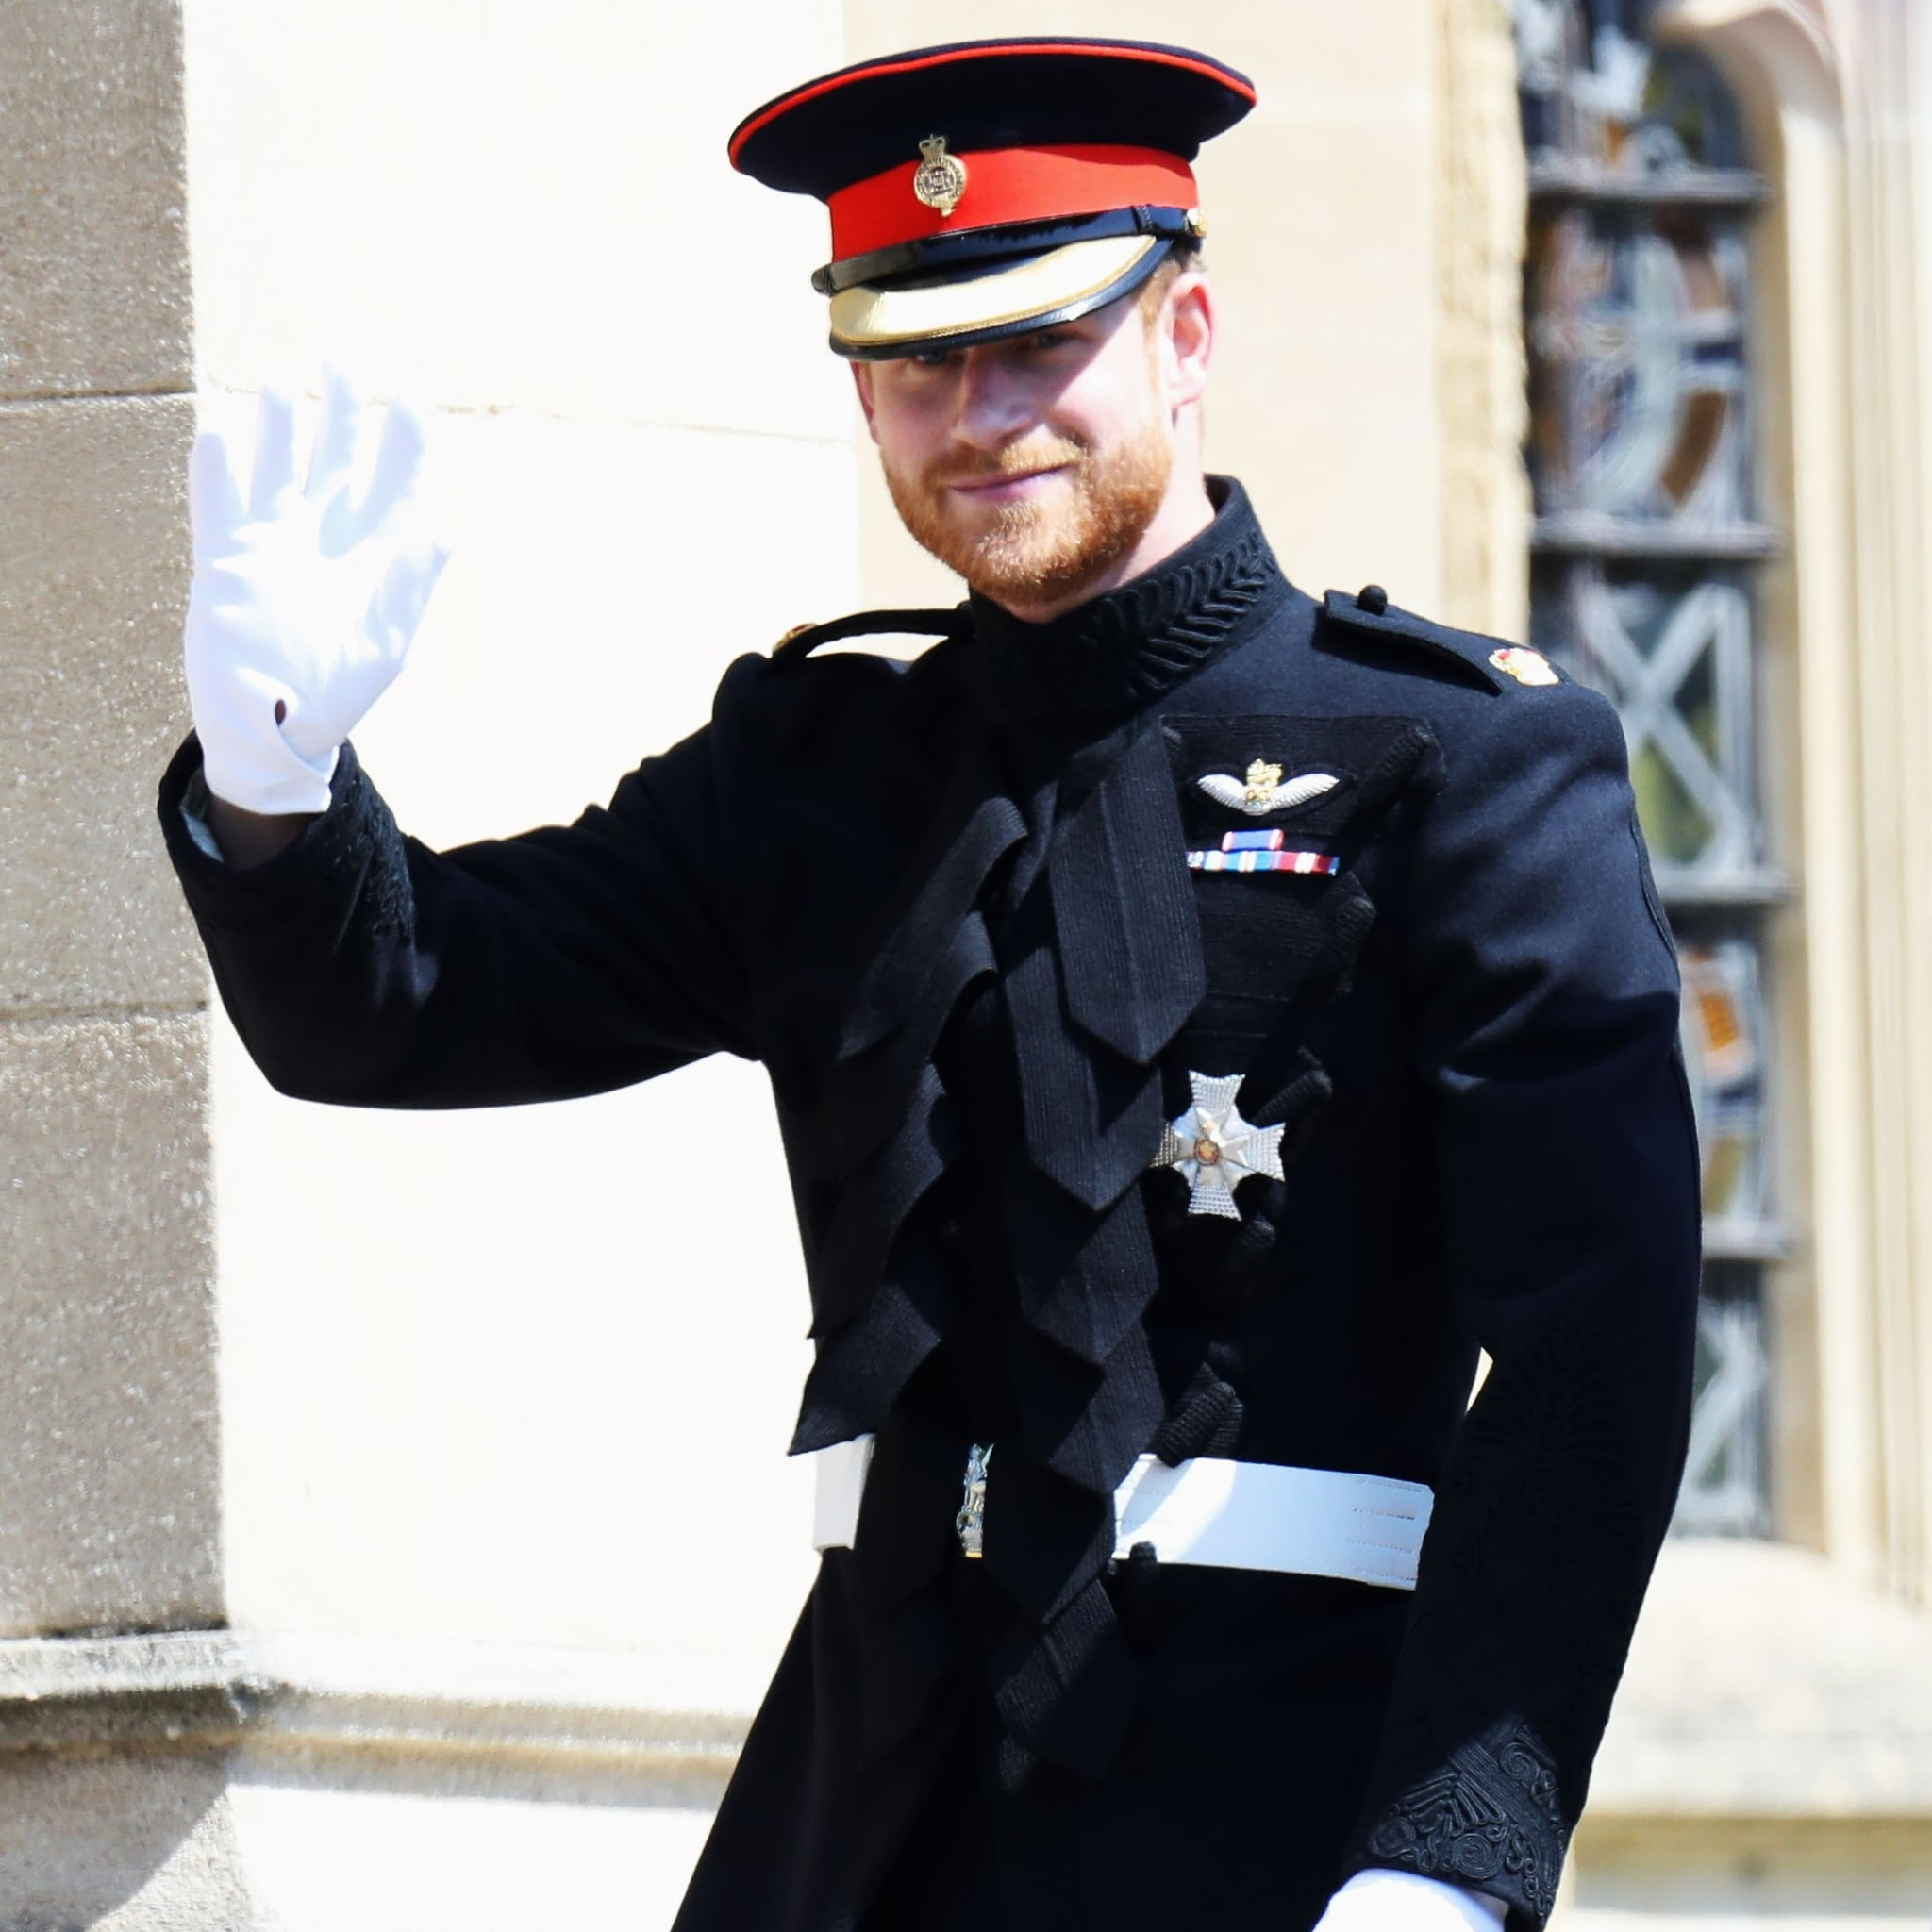 prince harry royal wedding outfit popsugar fashion prince harry royal wedding outfit